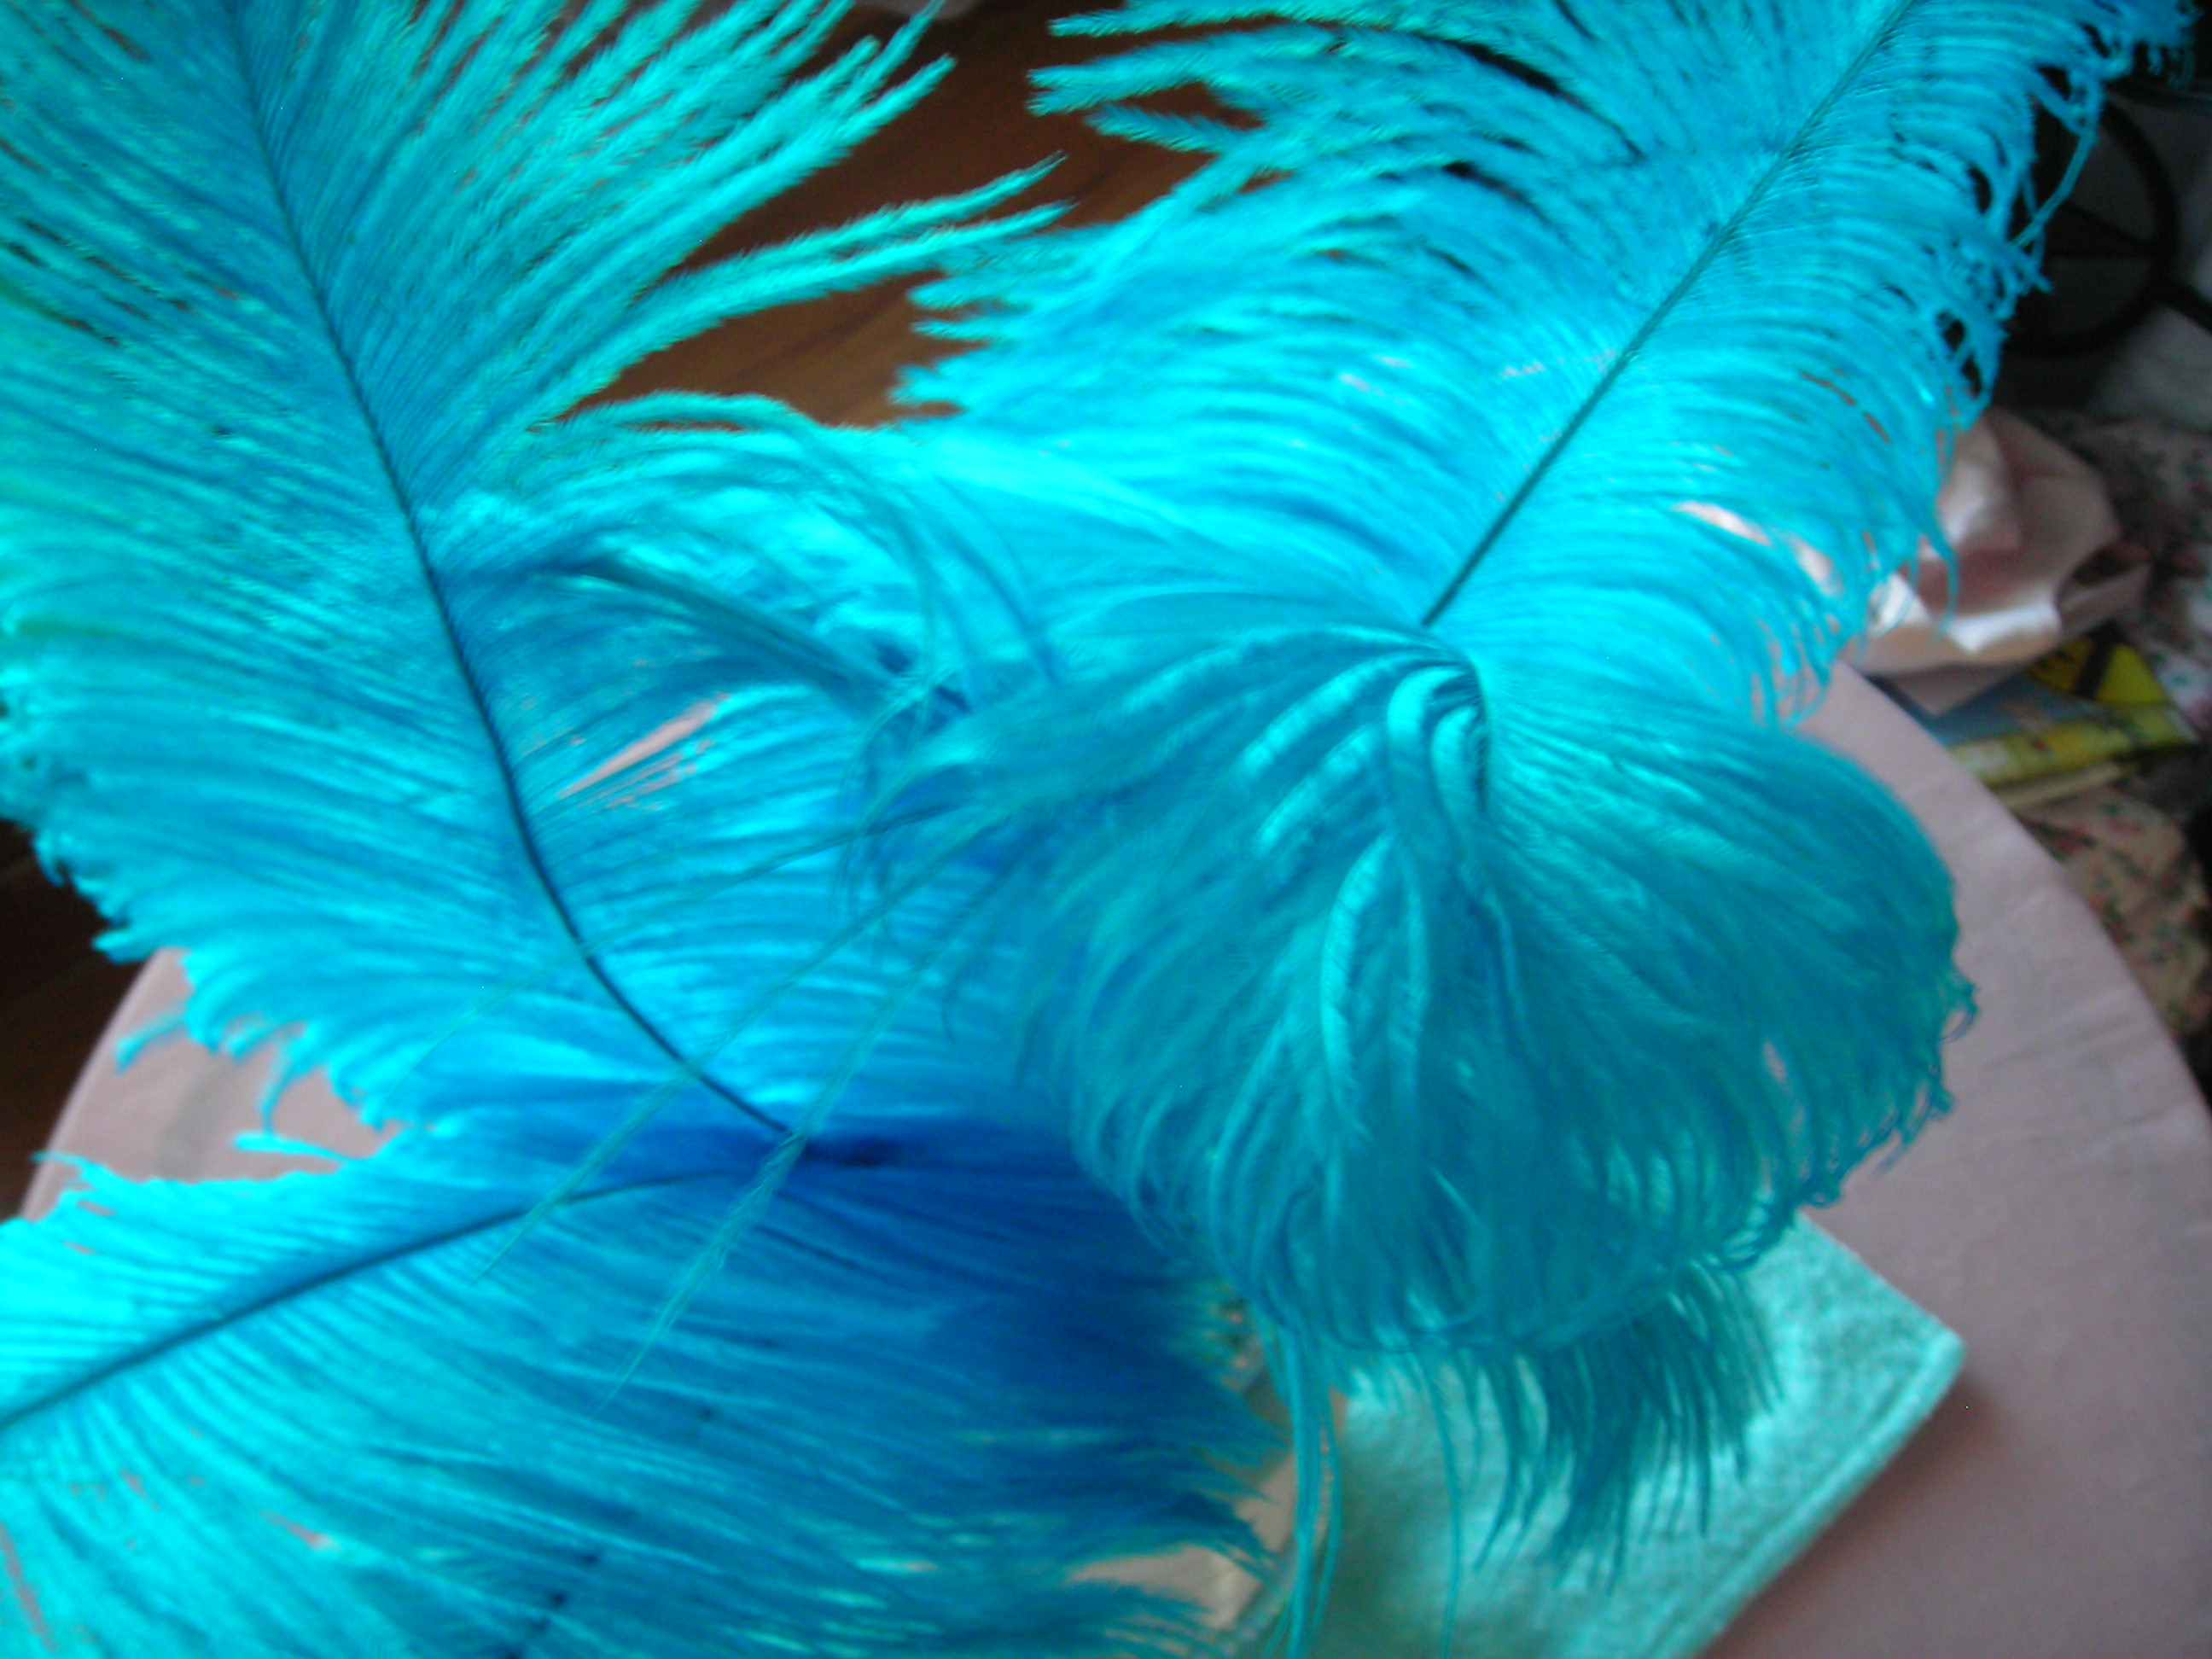 love these turquoise feathers!!